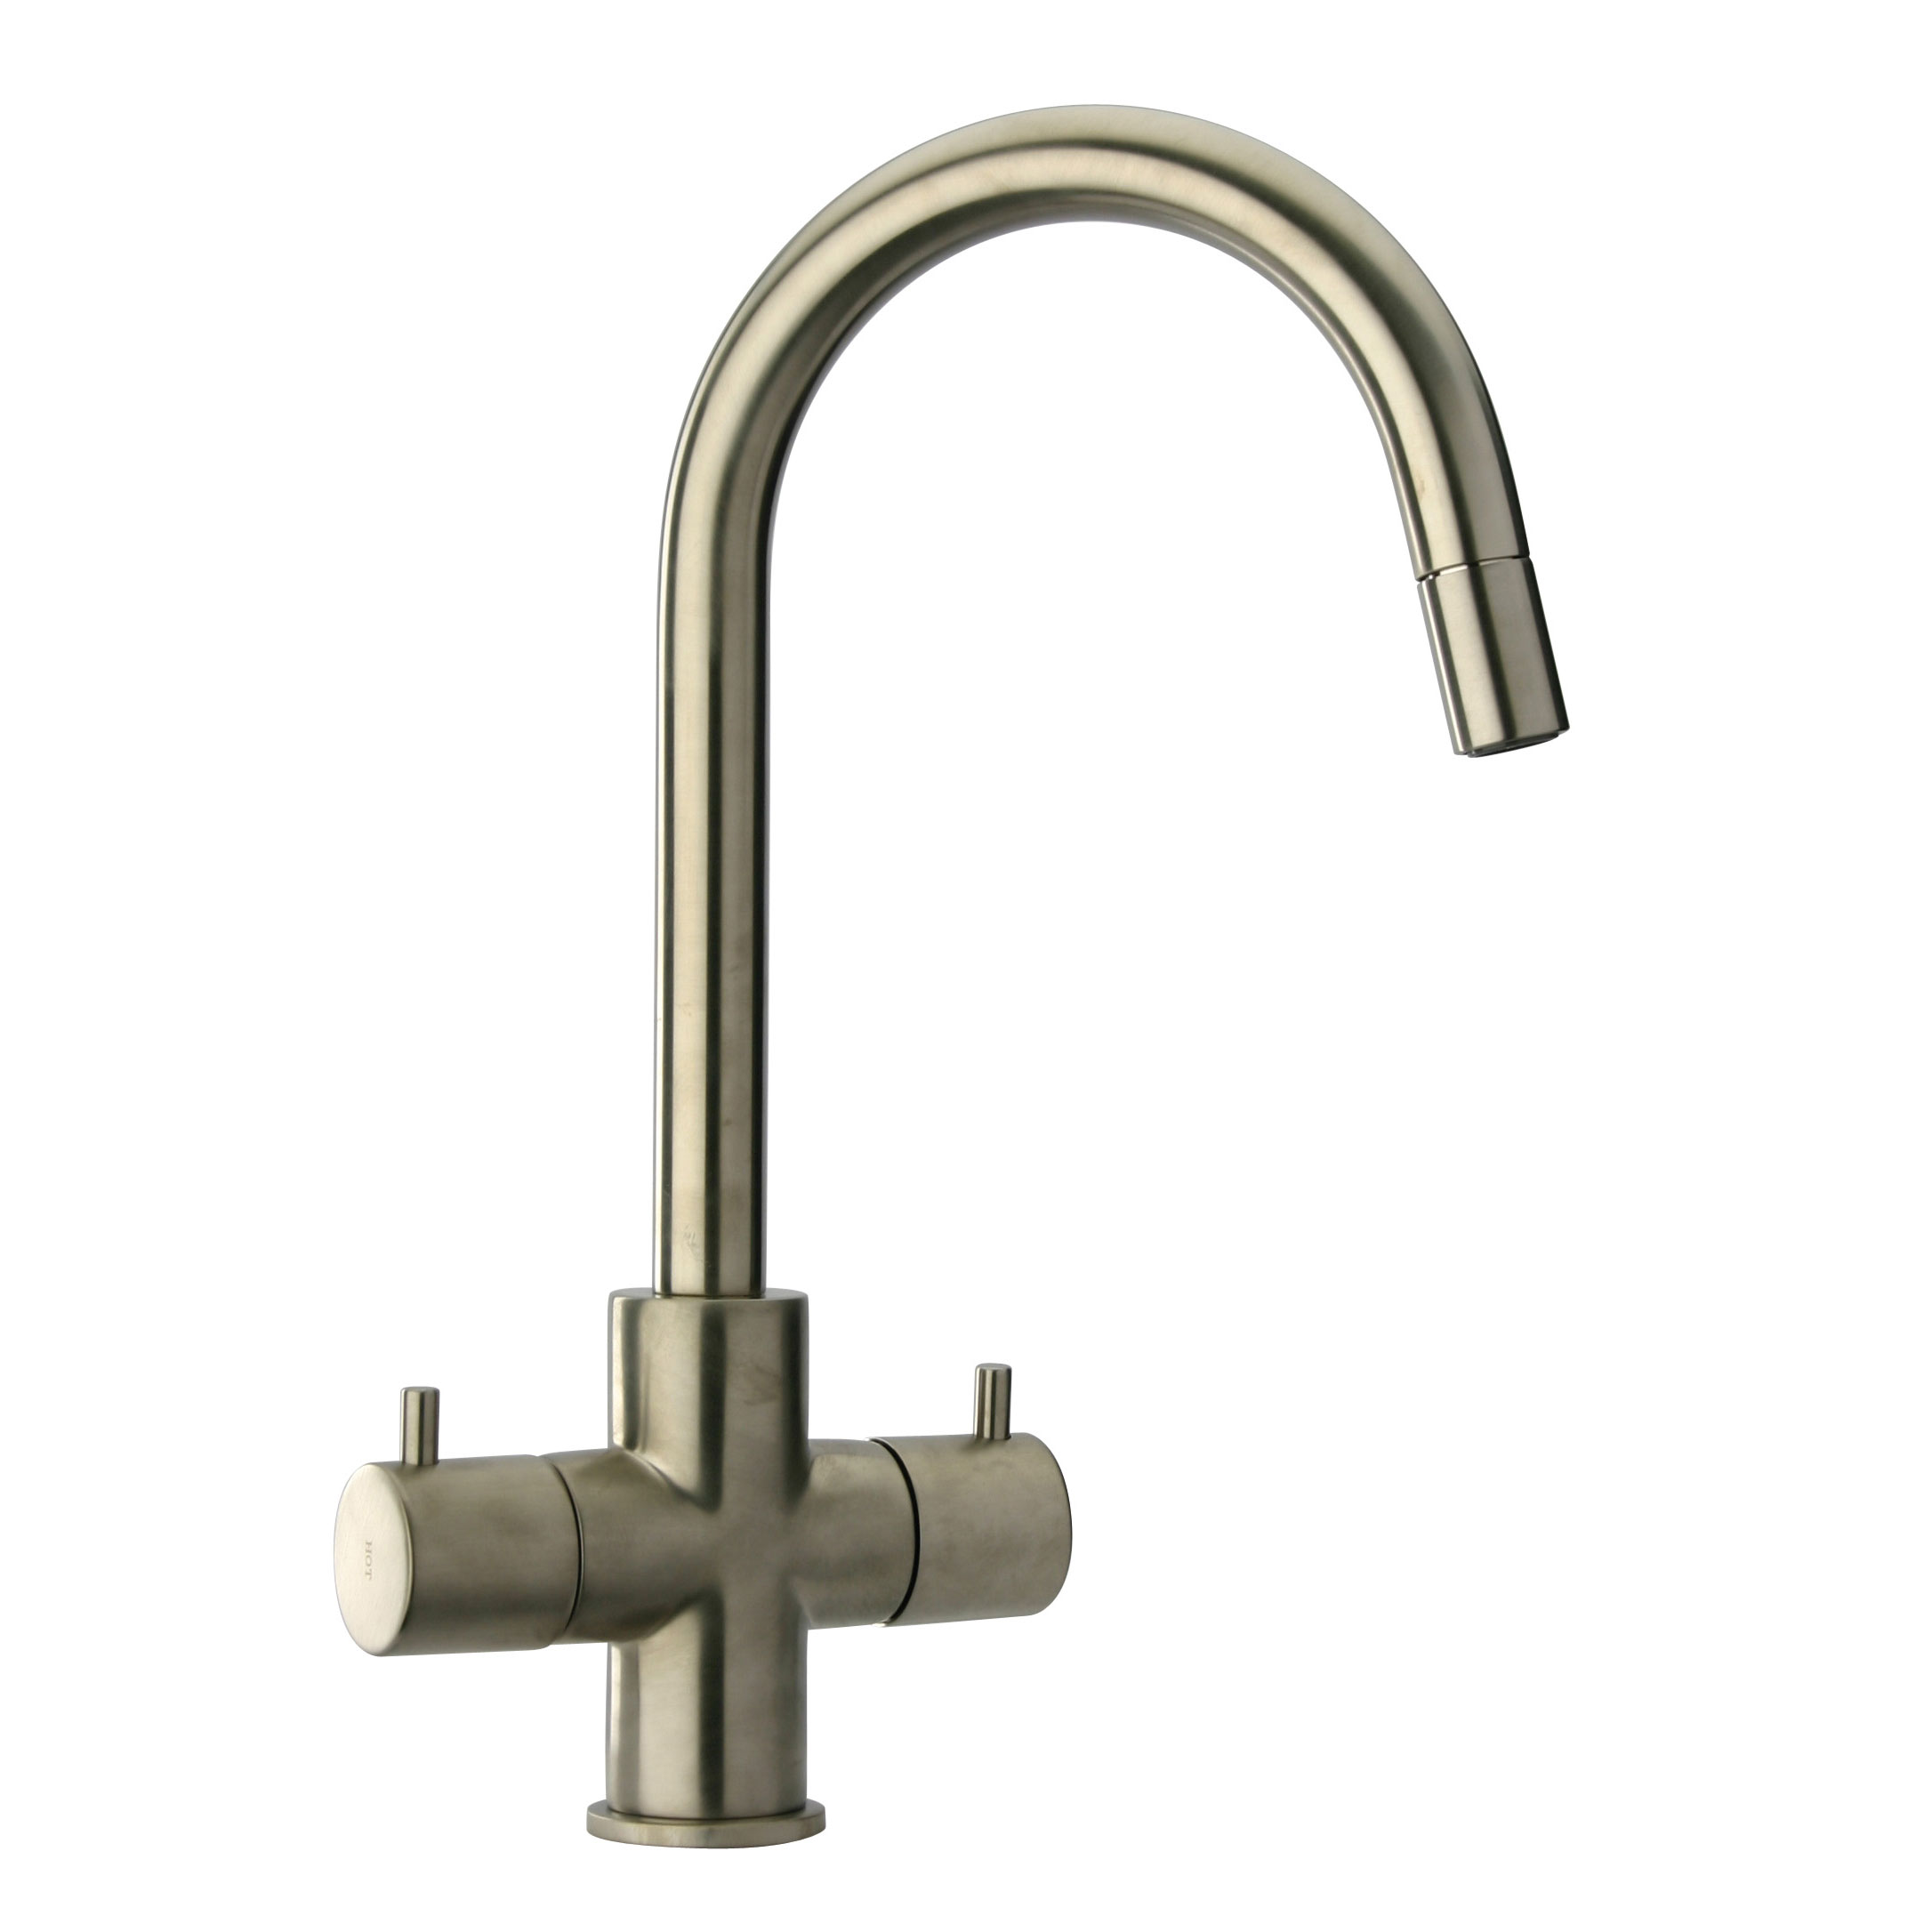 LaToscana-78PW491  TWO HANDLE PULL-DOWN KITCHEN FAUCET IN BRUSHED NICKEL PVD